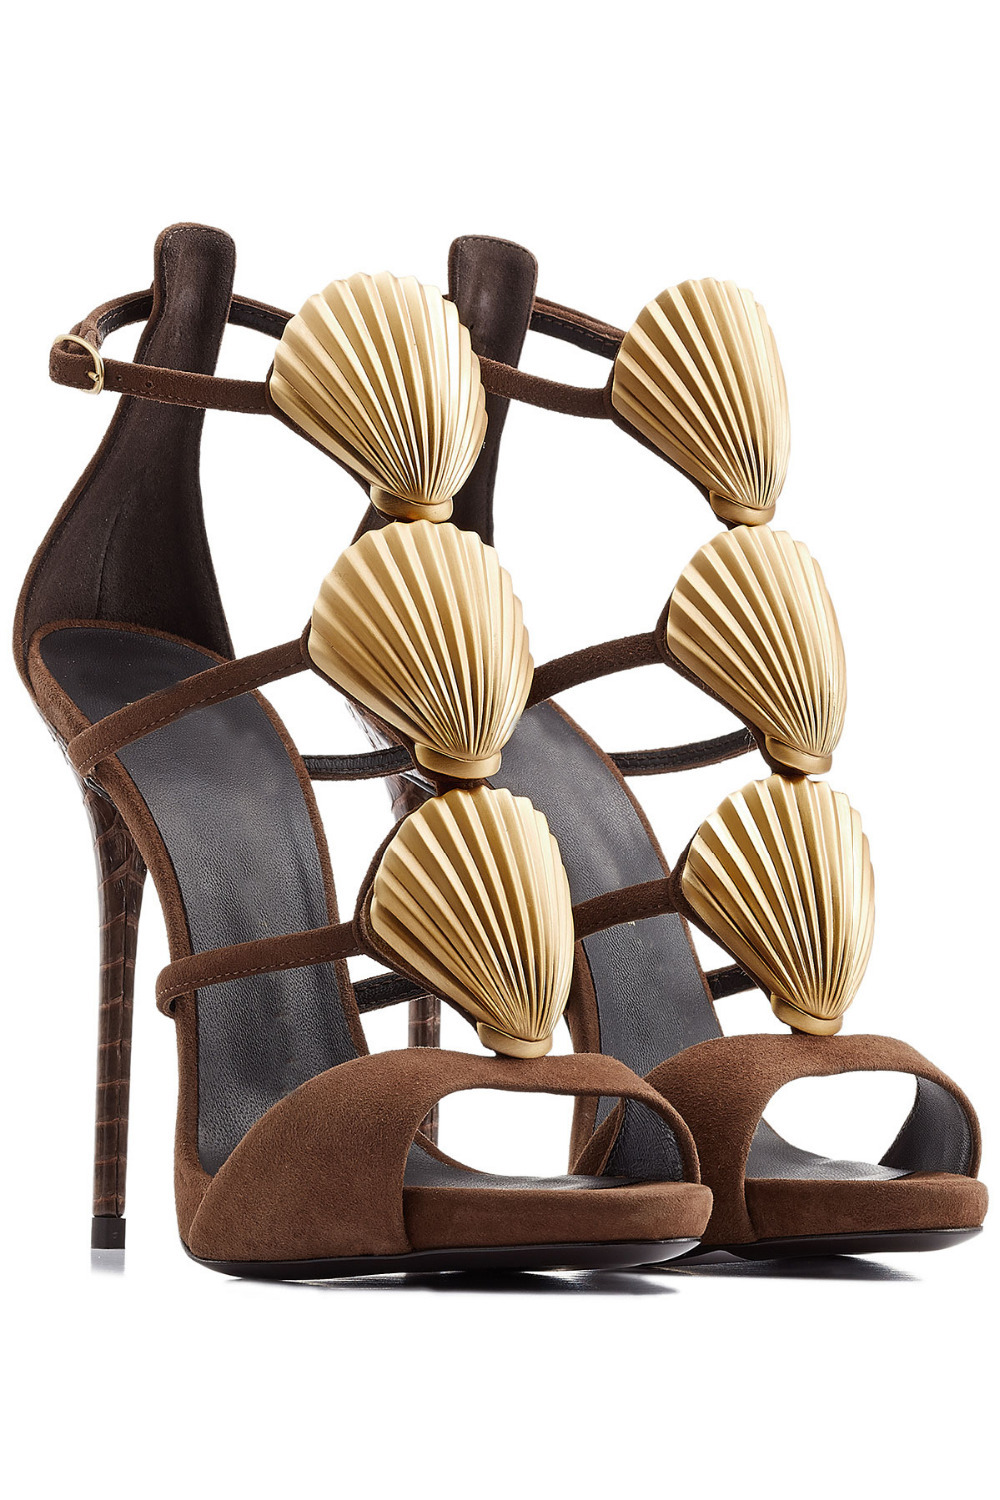 Brown Strappy High Heel Sandals